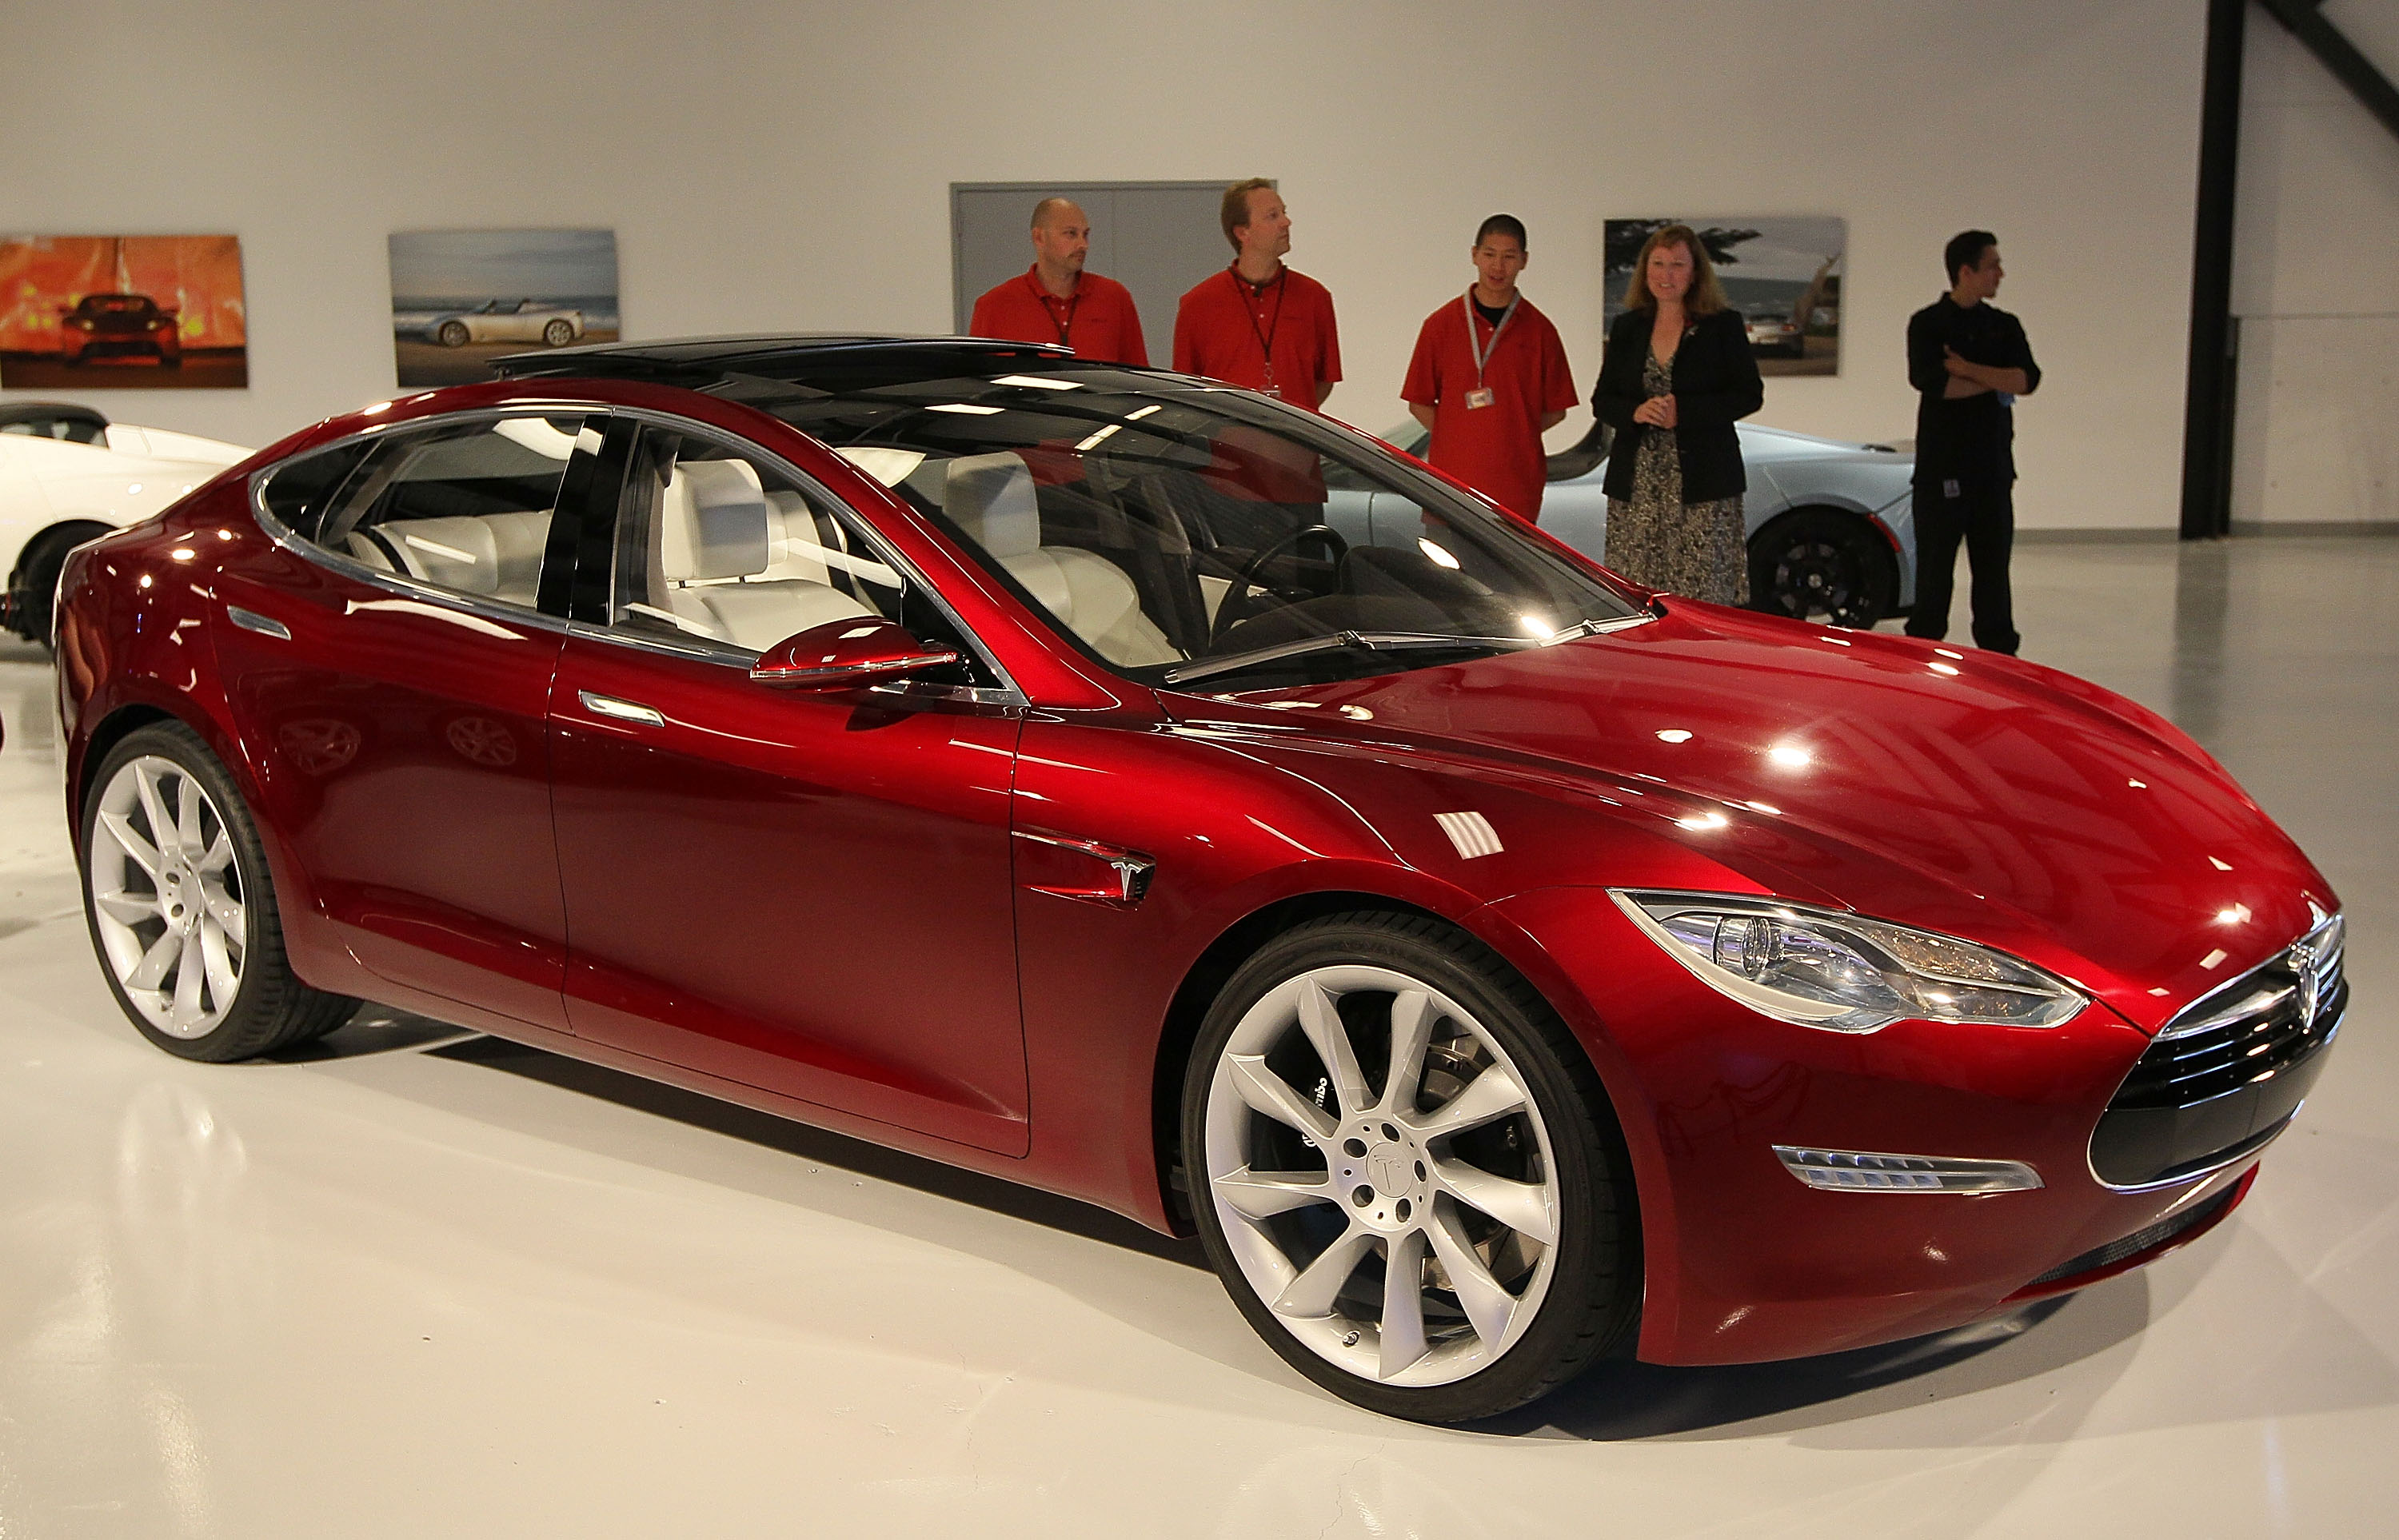 Tesla reveals China pricing for Model S with minimal markup, admits it 'could charge more'